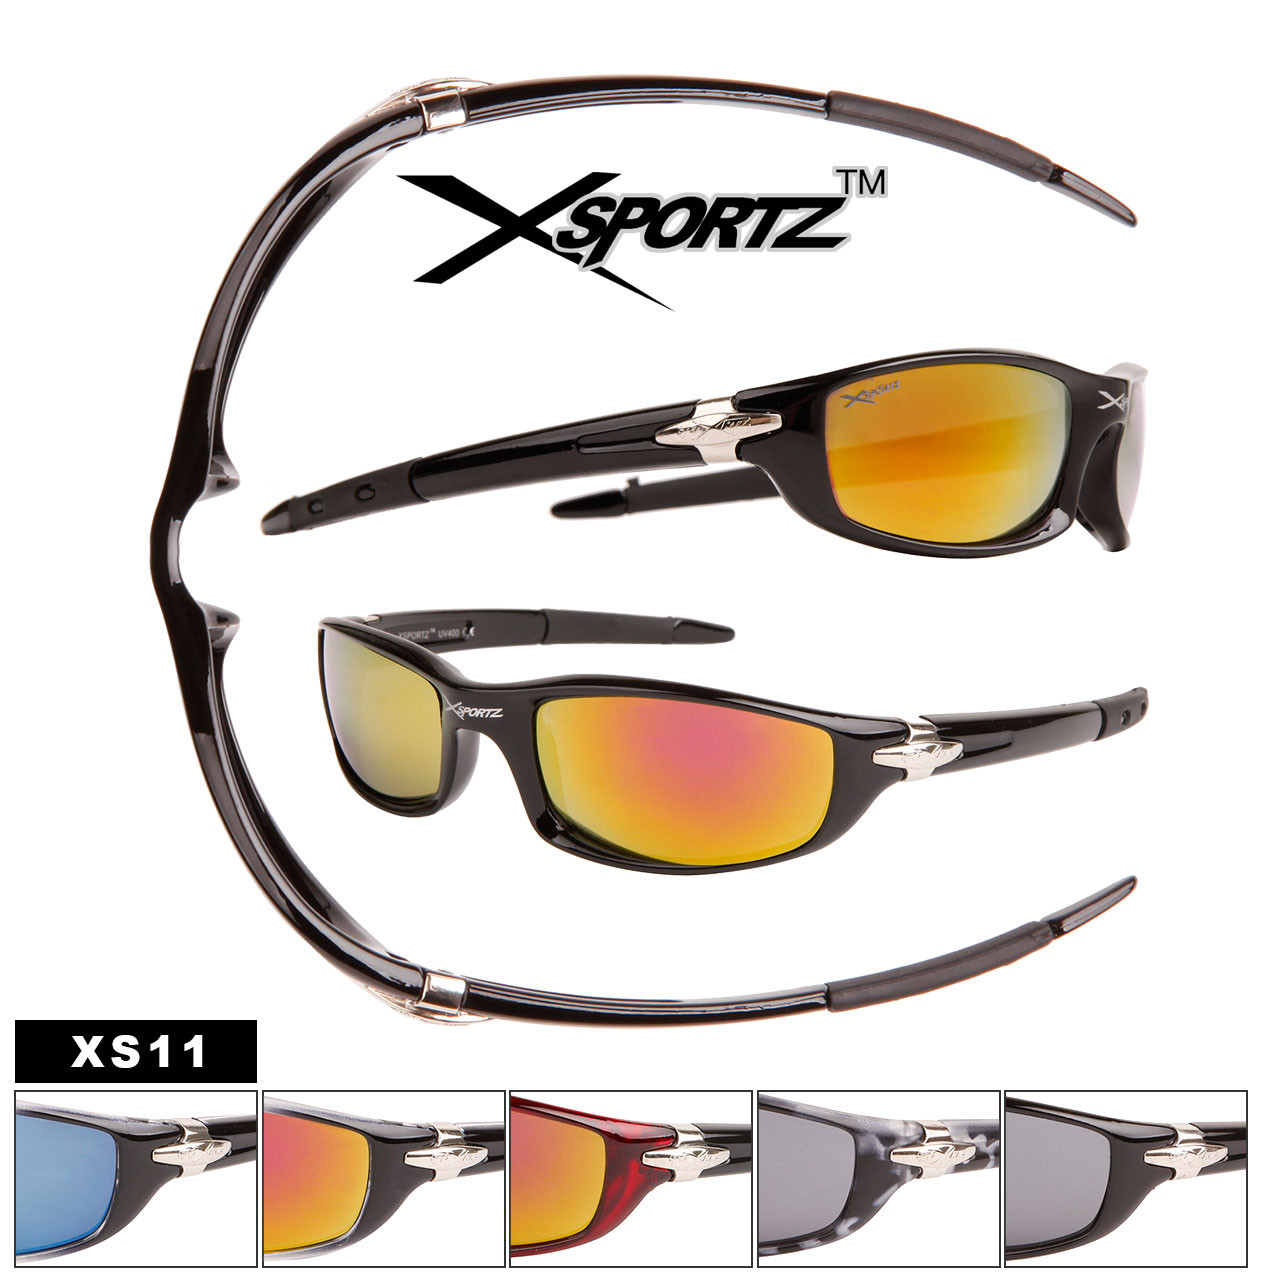 Xsportz™ Wholesale Men's Sport Sunglasses - Style XS11 (Assorted Colors)